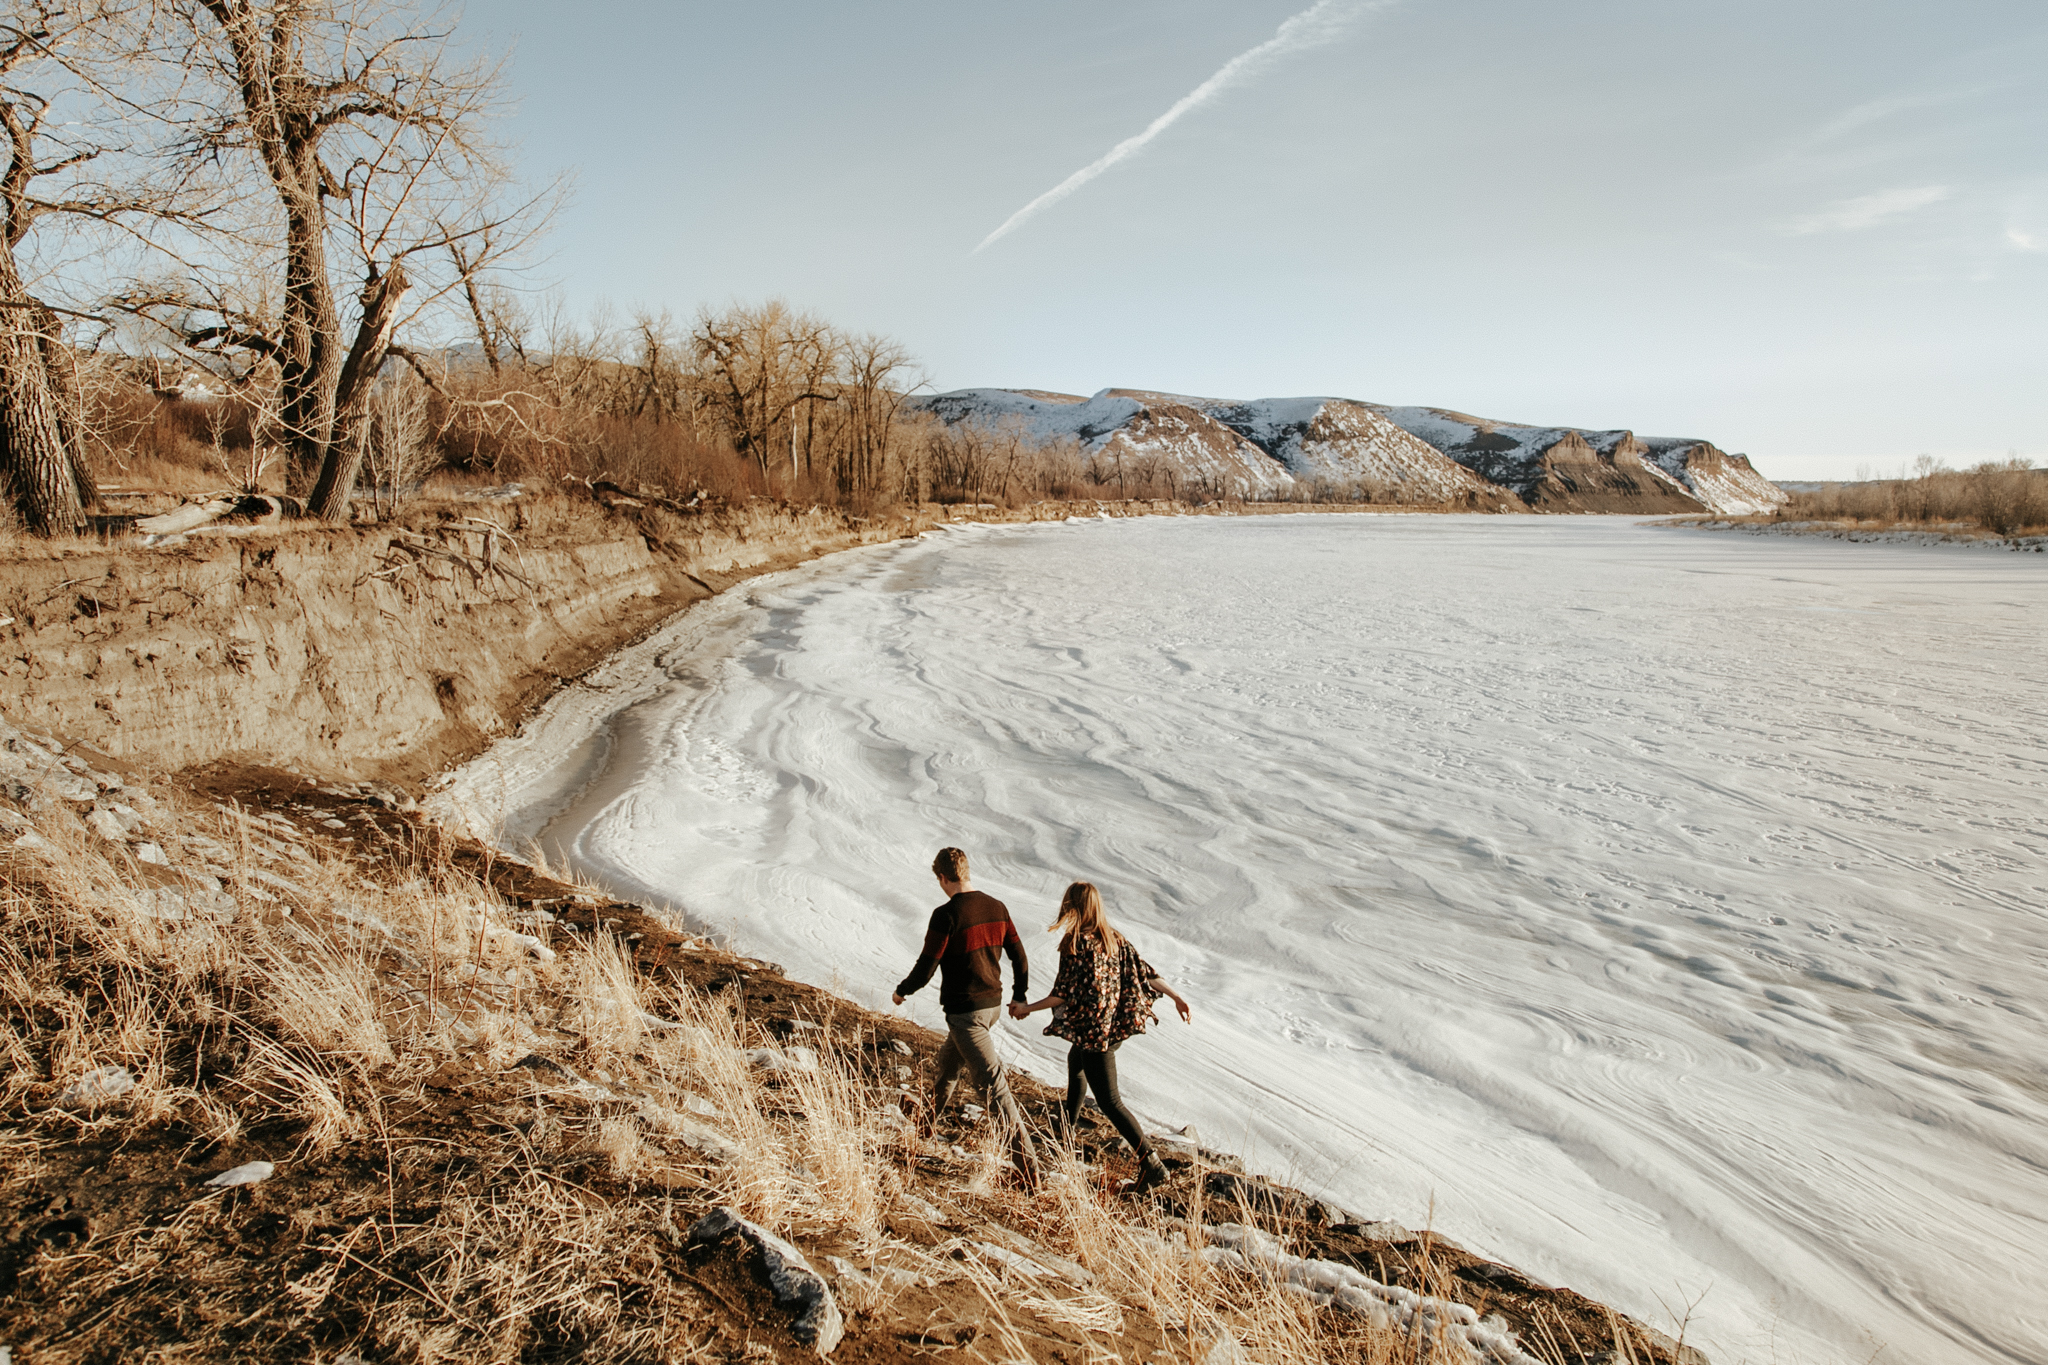 lethbridge-photographer-love-and-be-loved-photography-wedding-engagement-coulees-stuart-lacey-pavan-park-photo-image-picture-13.jpg